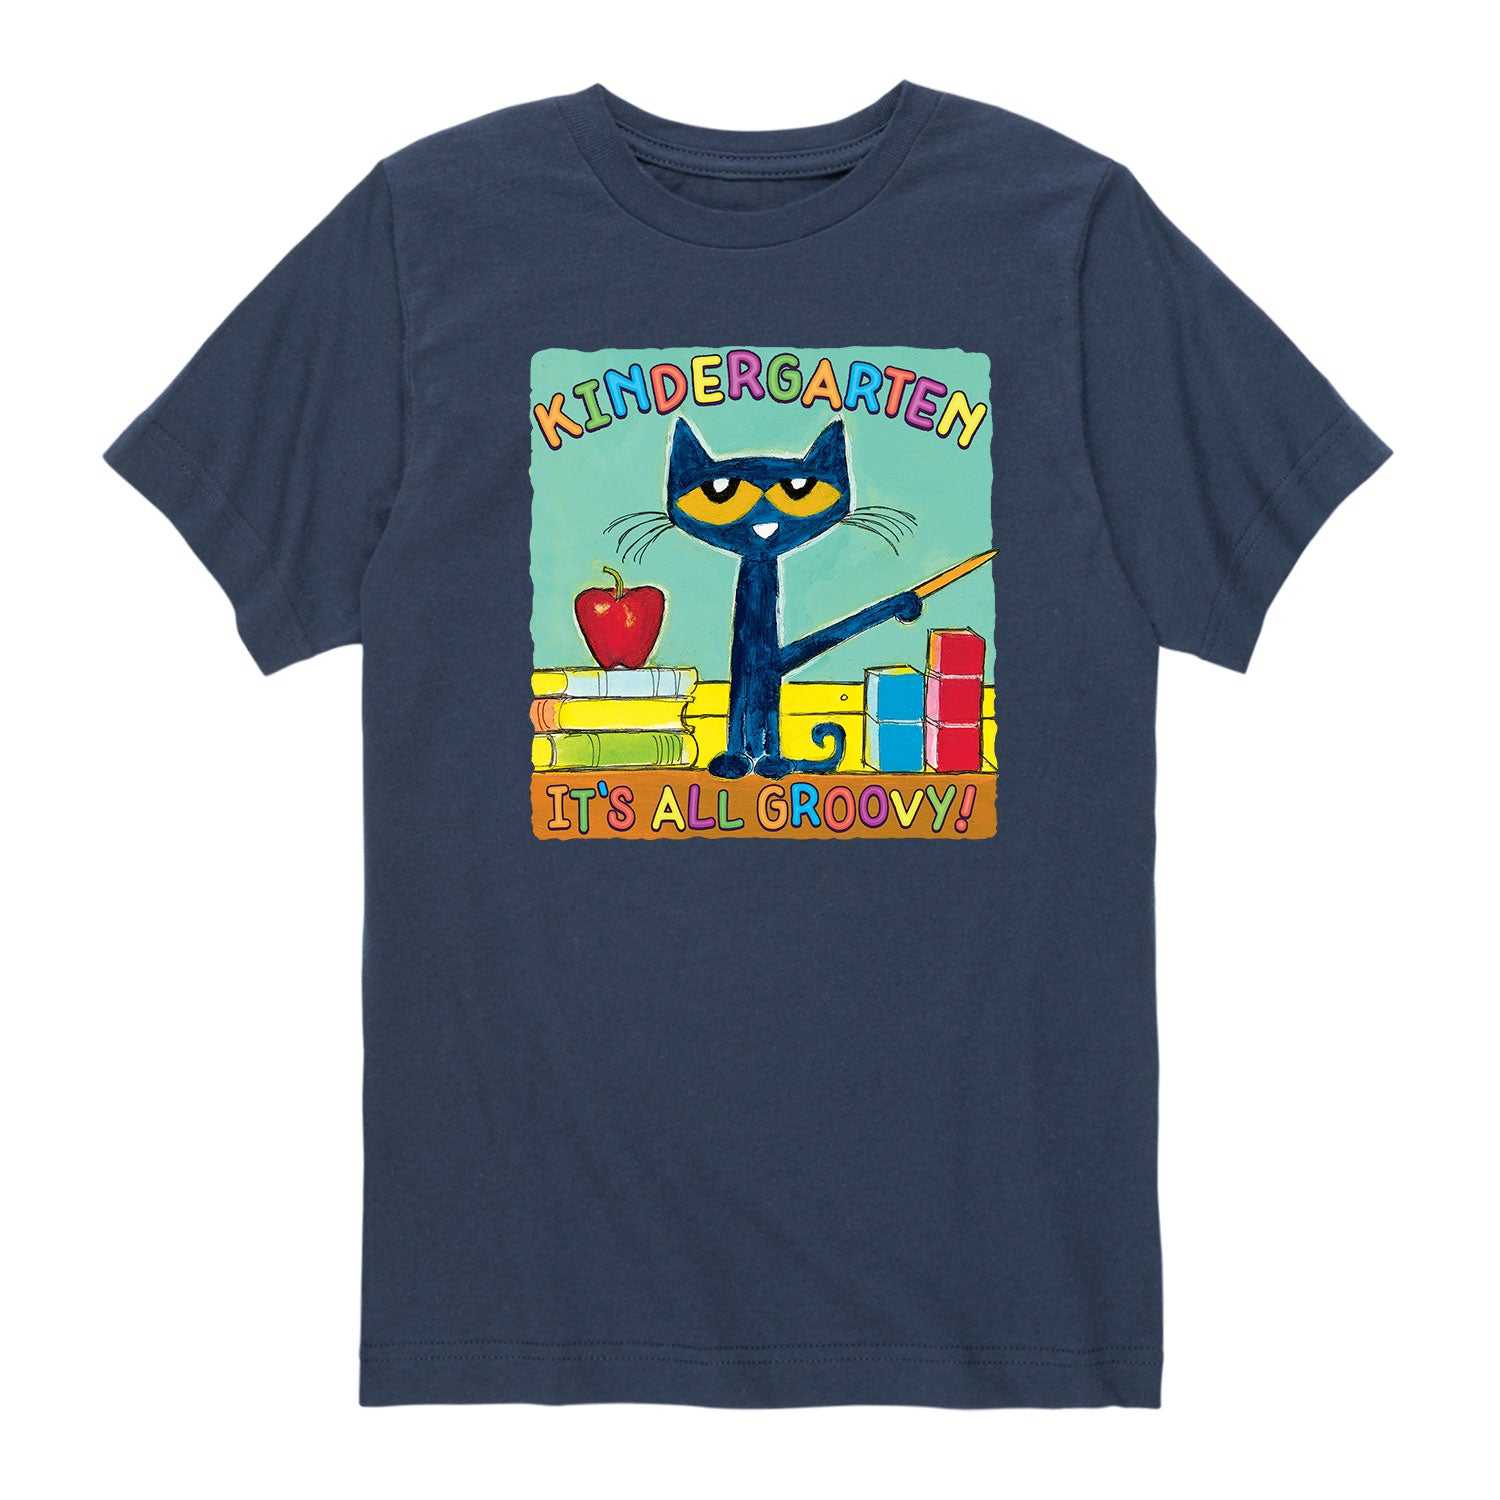 Pete The Cat Kindergarten It's All Groovy - Toddler Short Sleeve T-Shirt